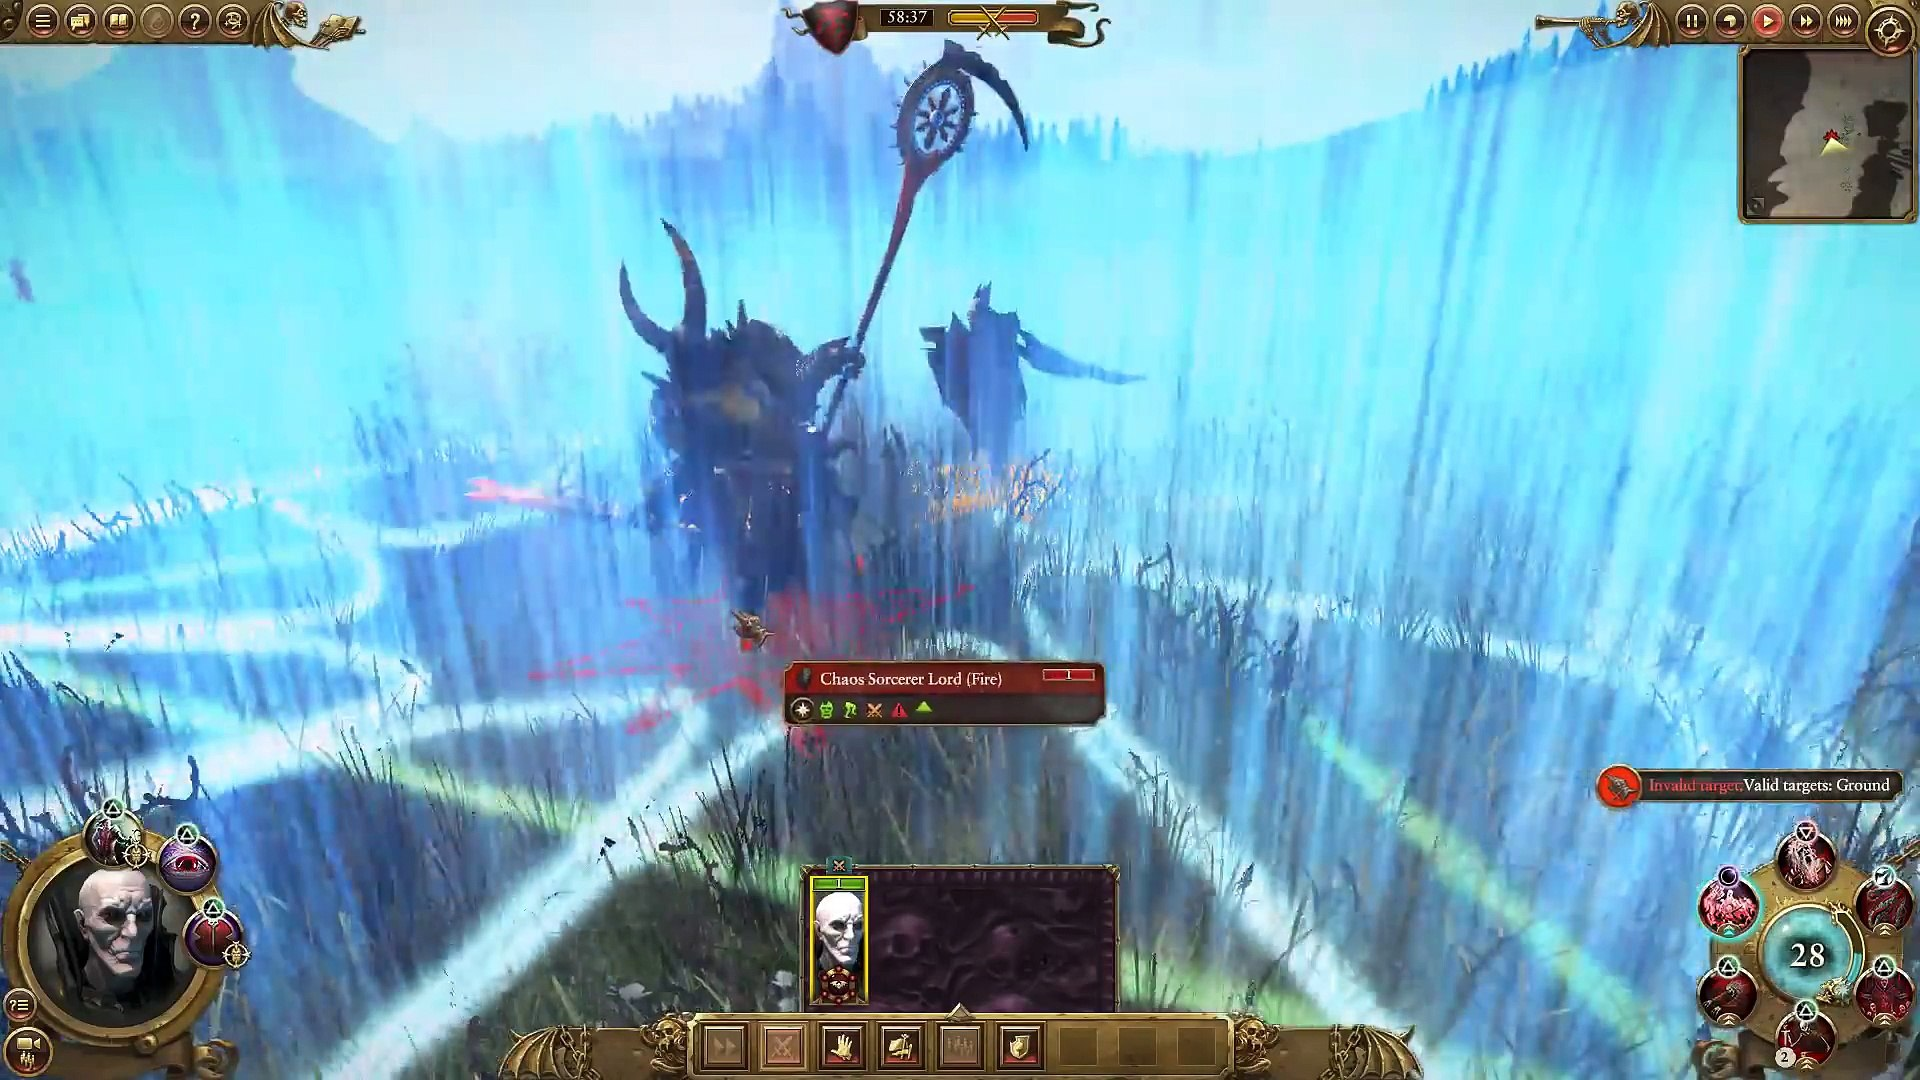 Vampire Lord VS Chaos Scorcerer Lord (Fire) Warhammer Total War